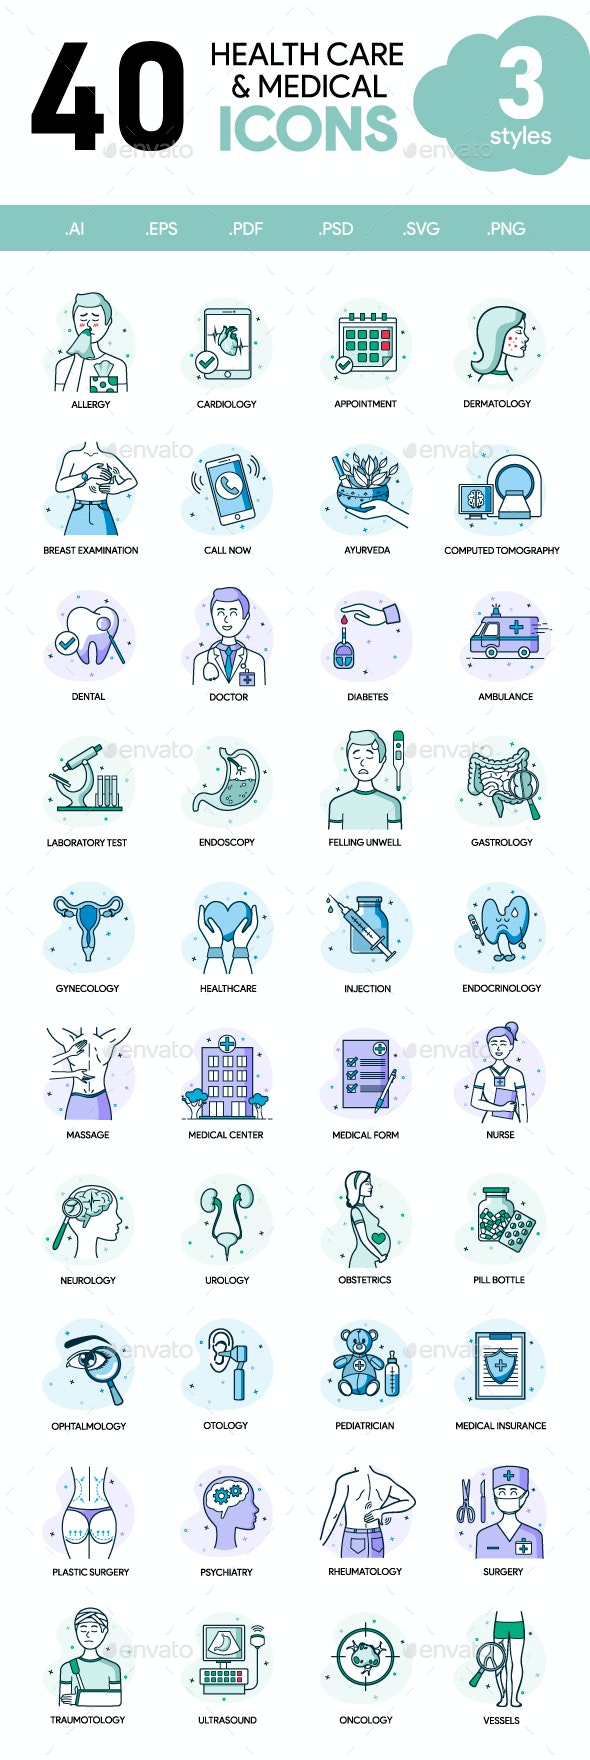 Health Care & Medical Icons - Icons